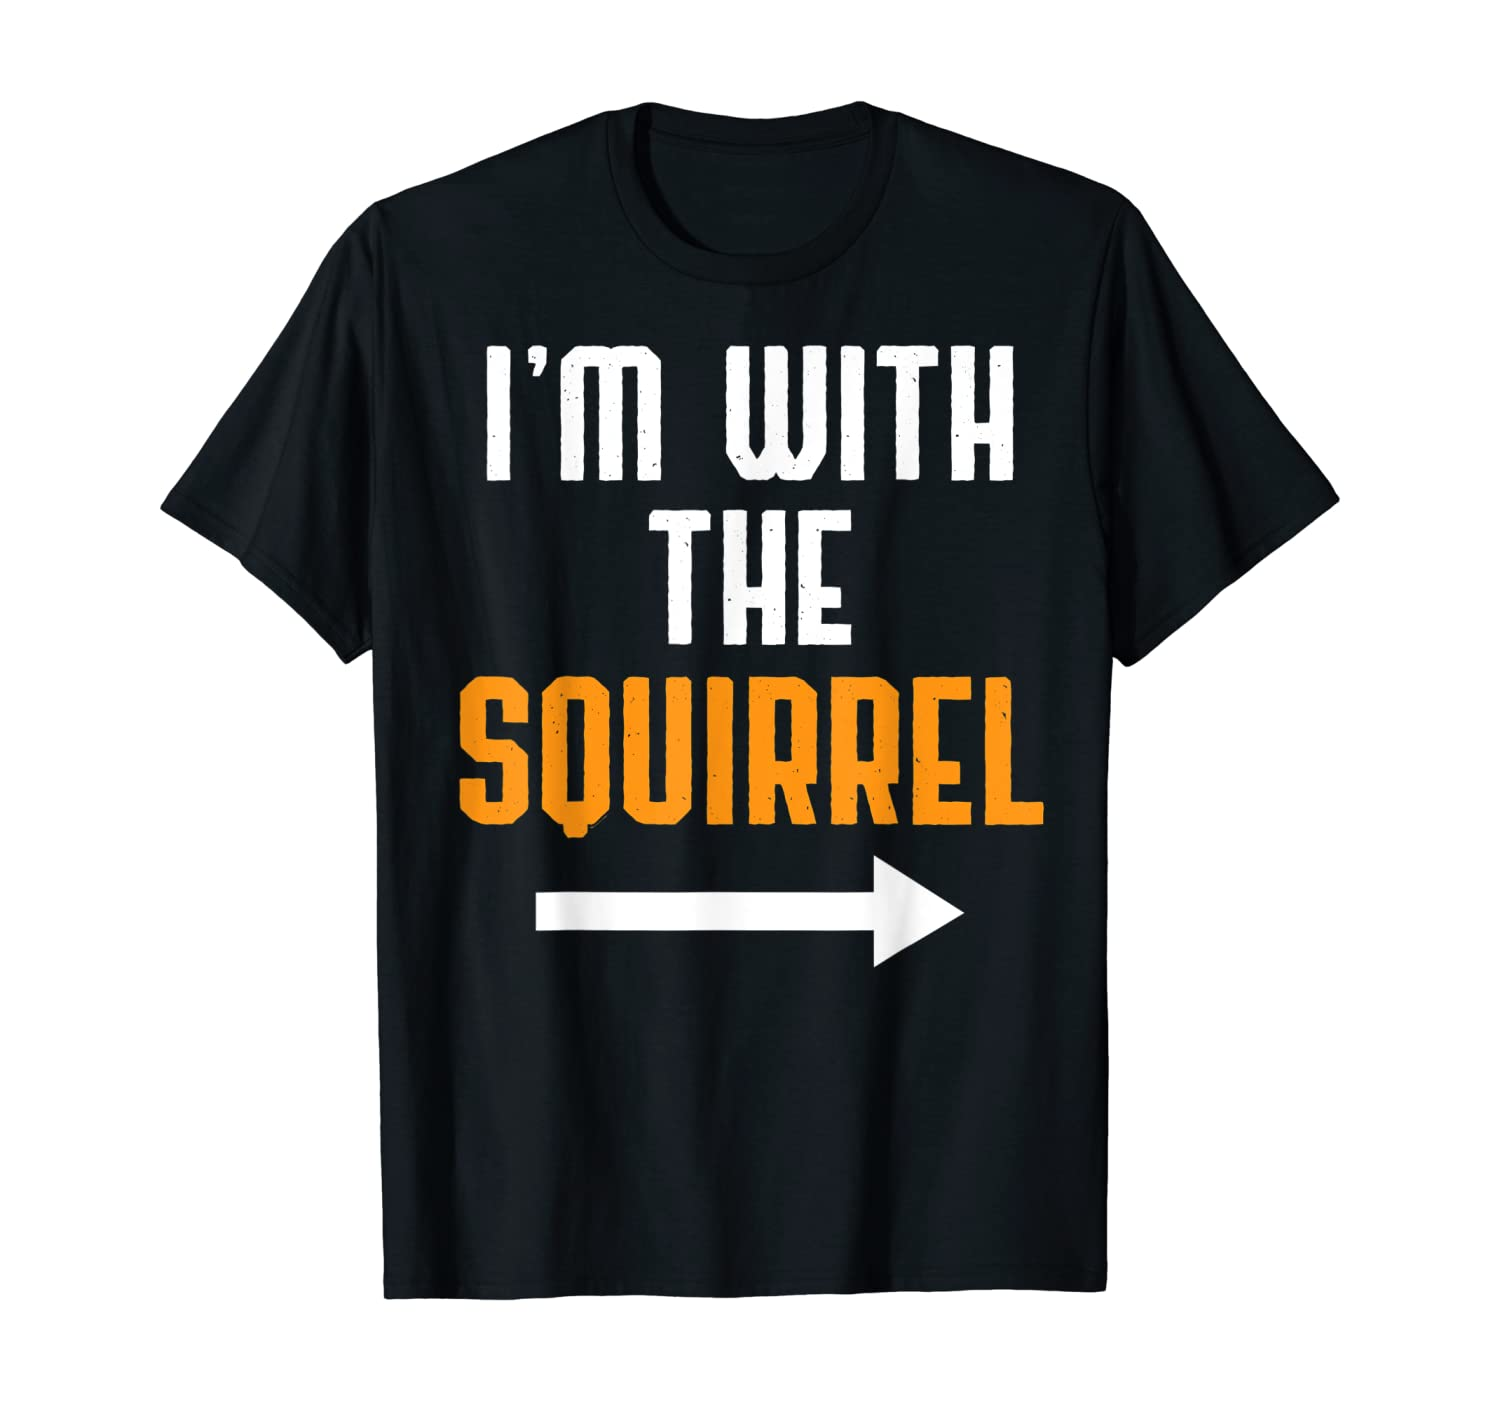 I'm With The Squirrel Shirt Costume Funny Halloween Couple T-Shirt